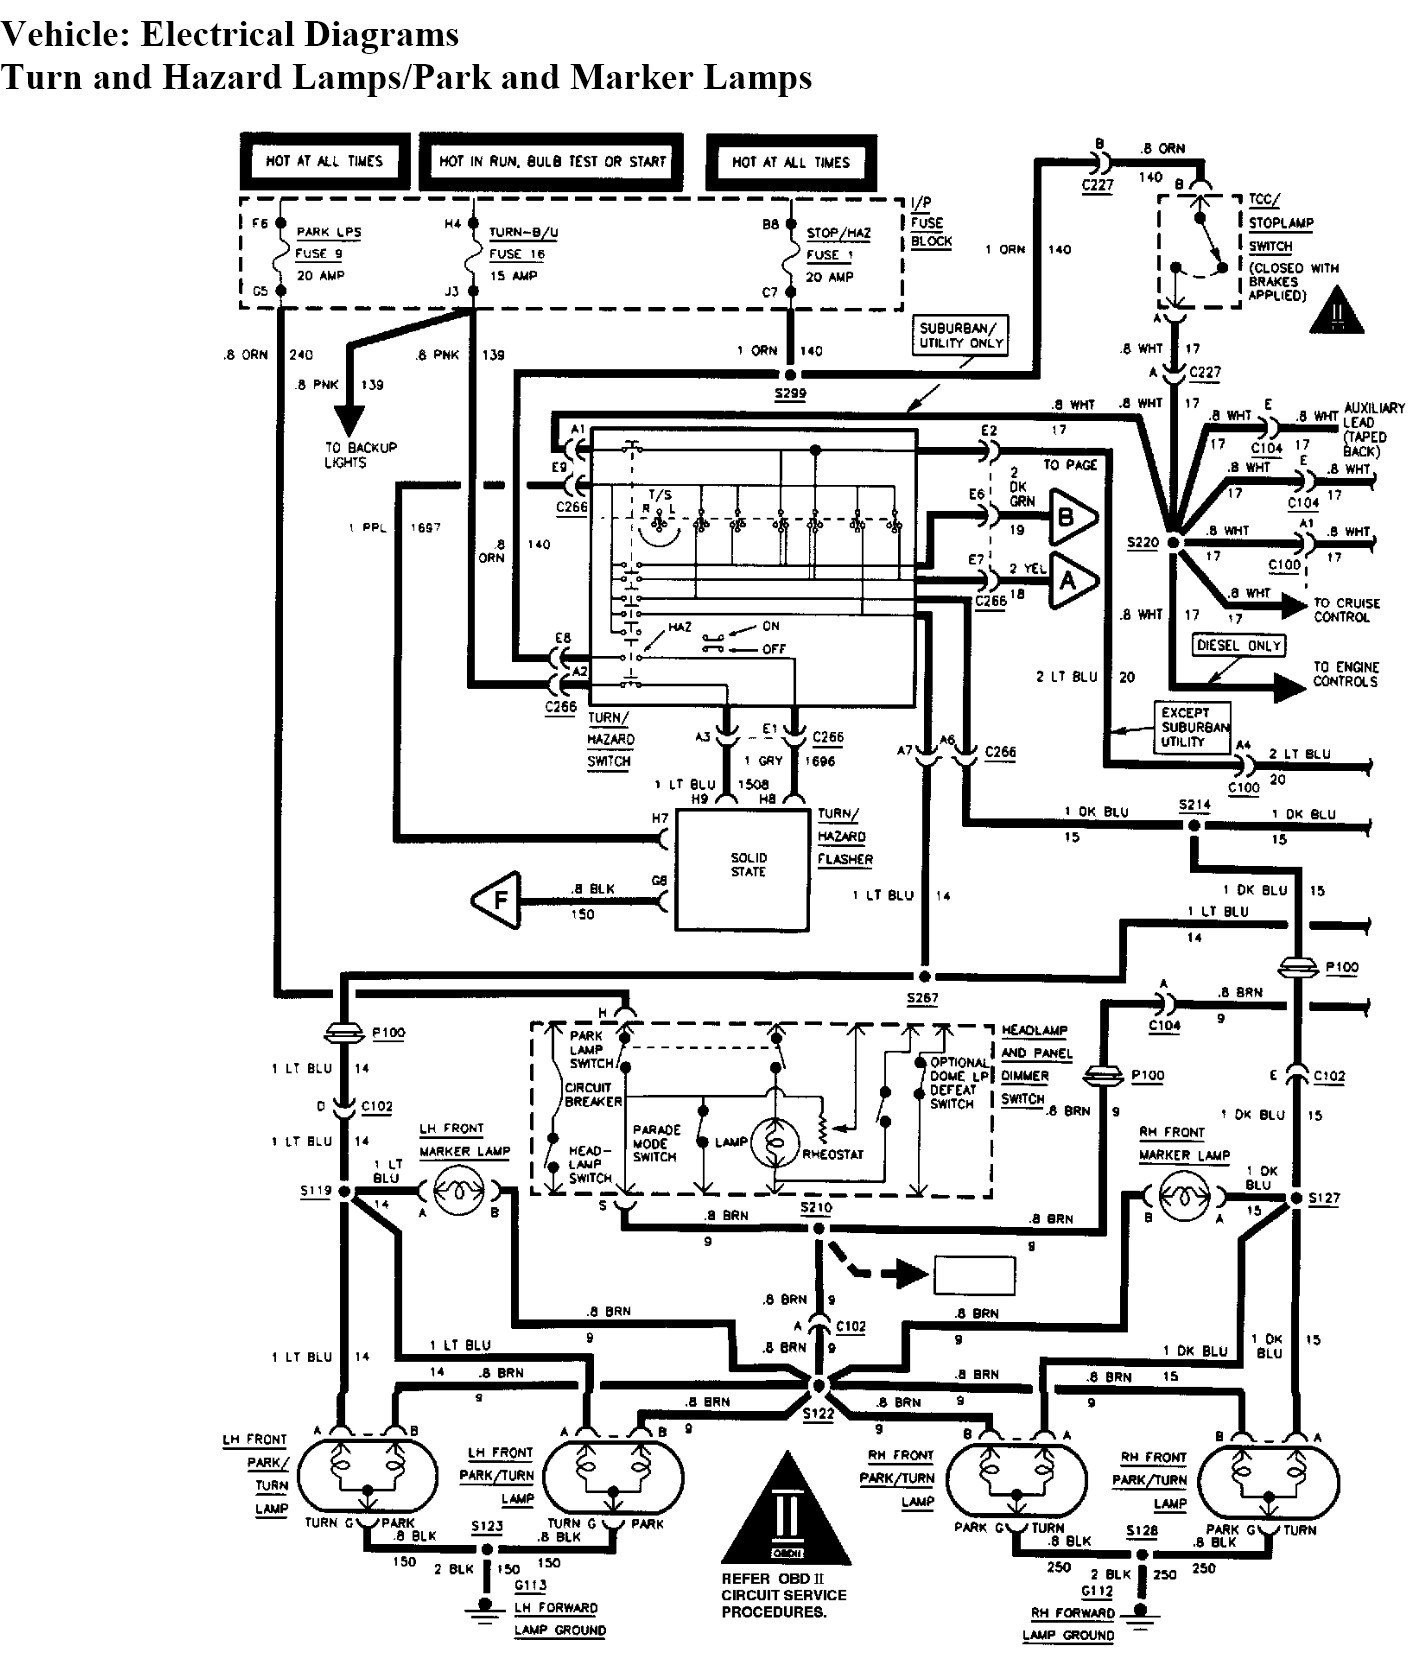 2000 cherokee tail light wiring diagram